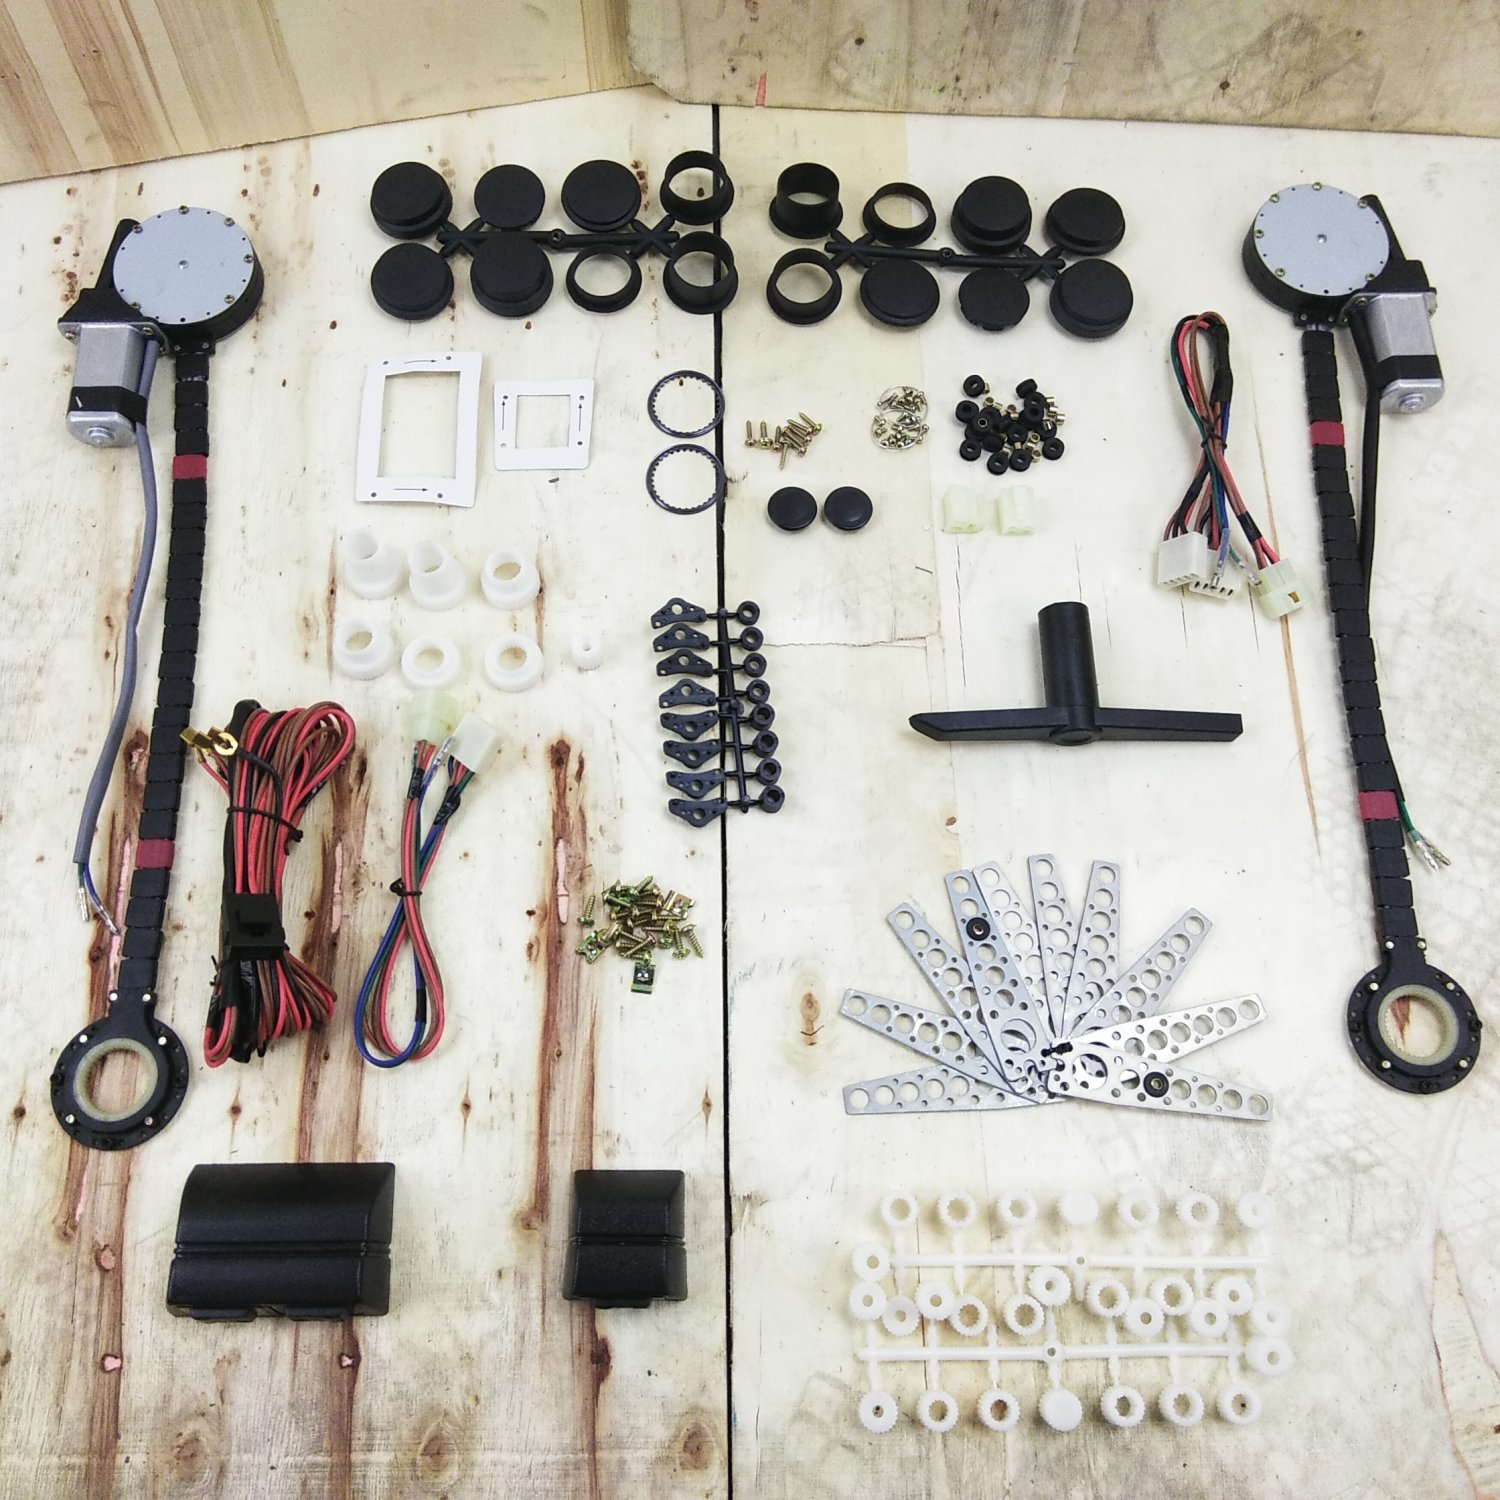 1955-66 Ford Thunderbird Power Window Kit Plug and Play Harness w Switches